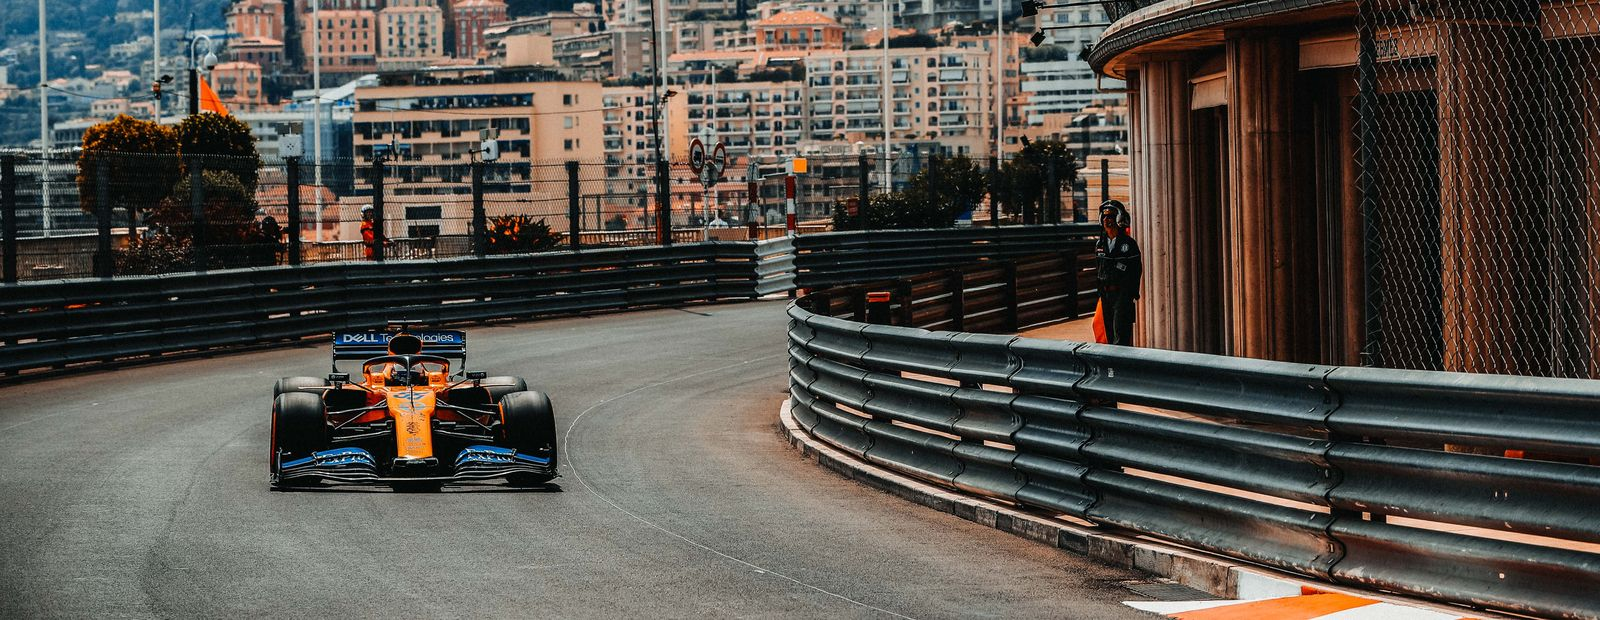 2019 Monaco Grand Prix - Qualifying